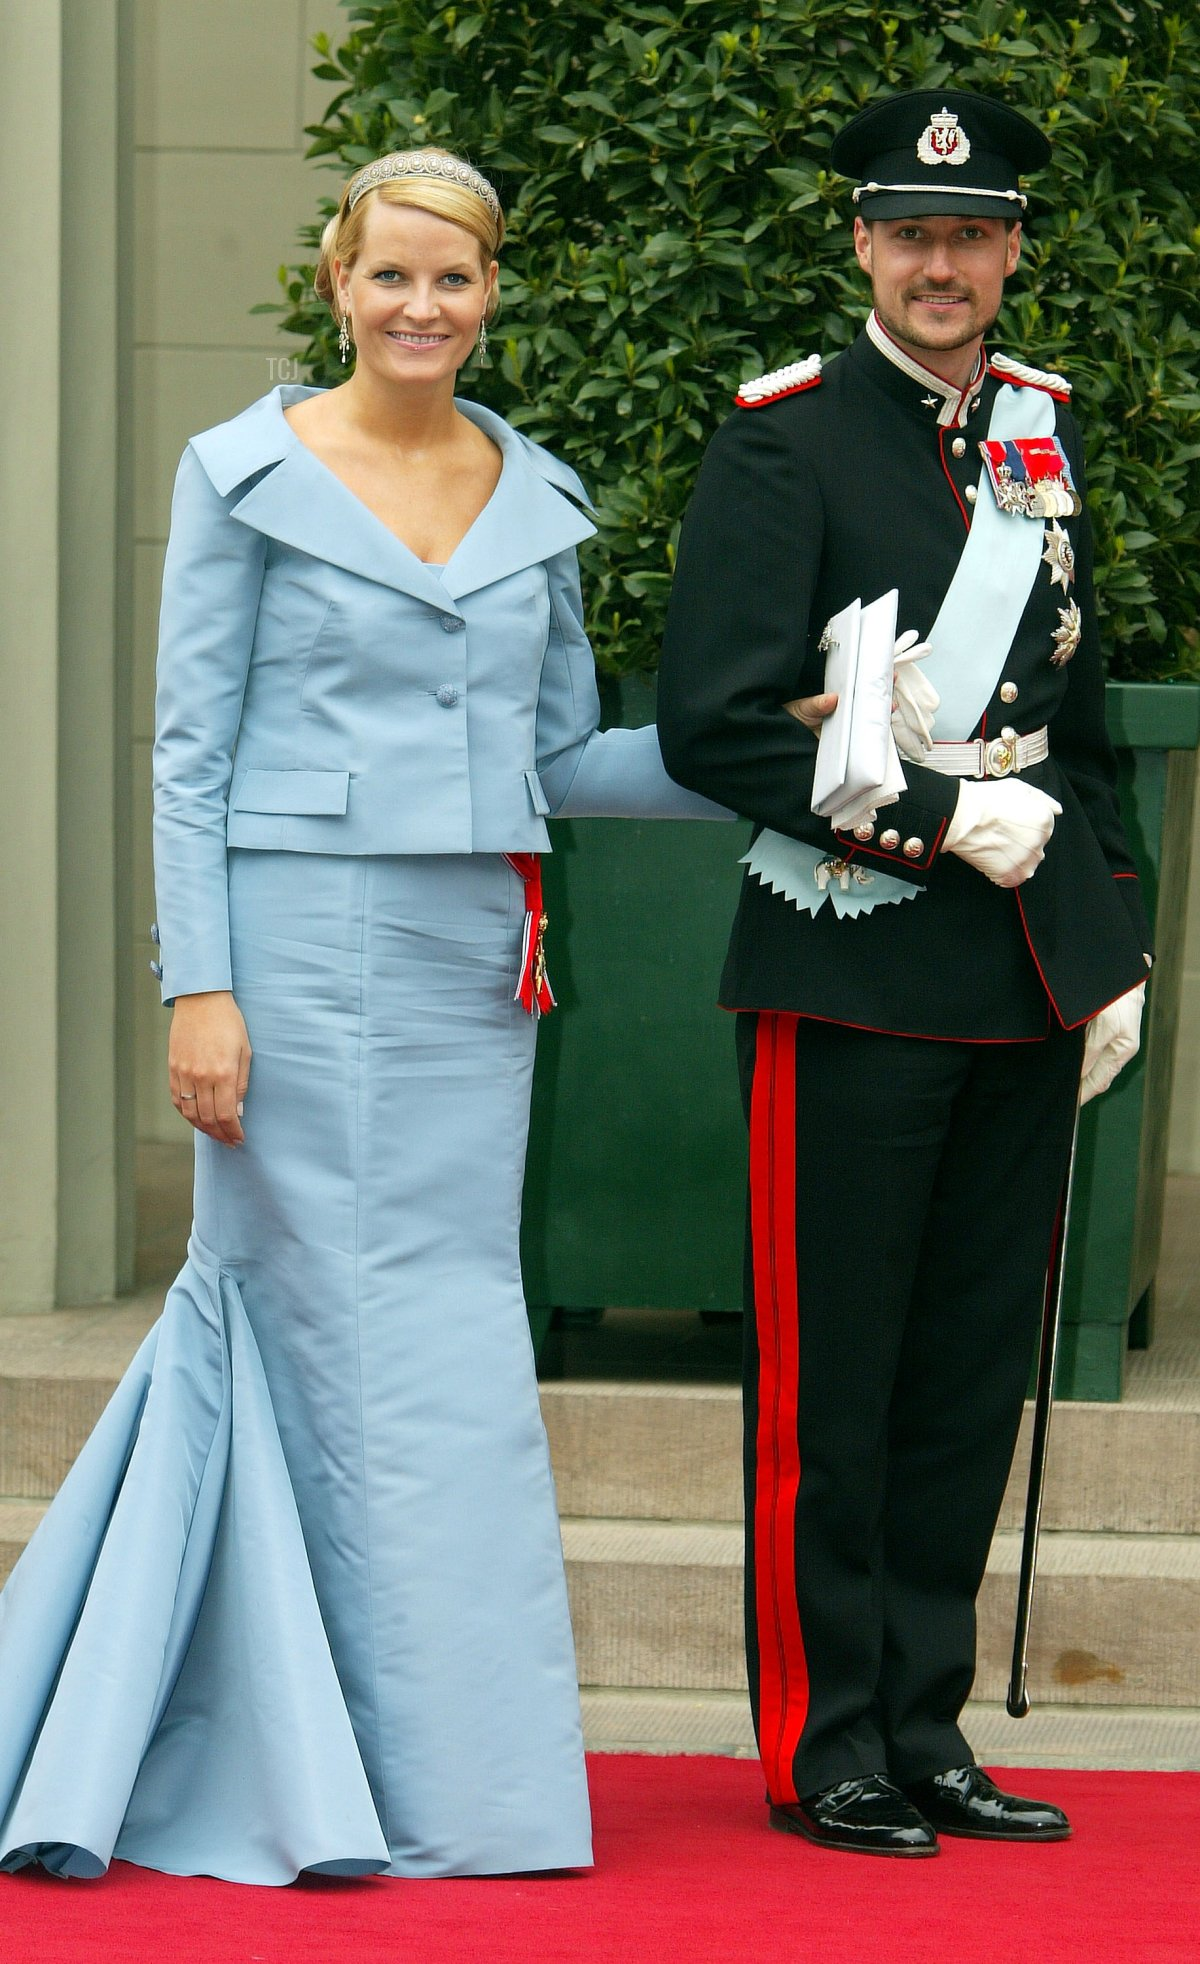 Norwegian Crown Prince Haakon and his wife Crown Princess Mette-Marit arrive to attend the wedding between Danish Crown Prince Frederik and Mary Donaldson in Copenhagen Cathedral May 14, 2004